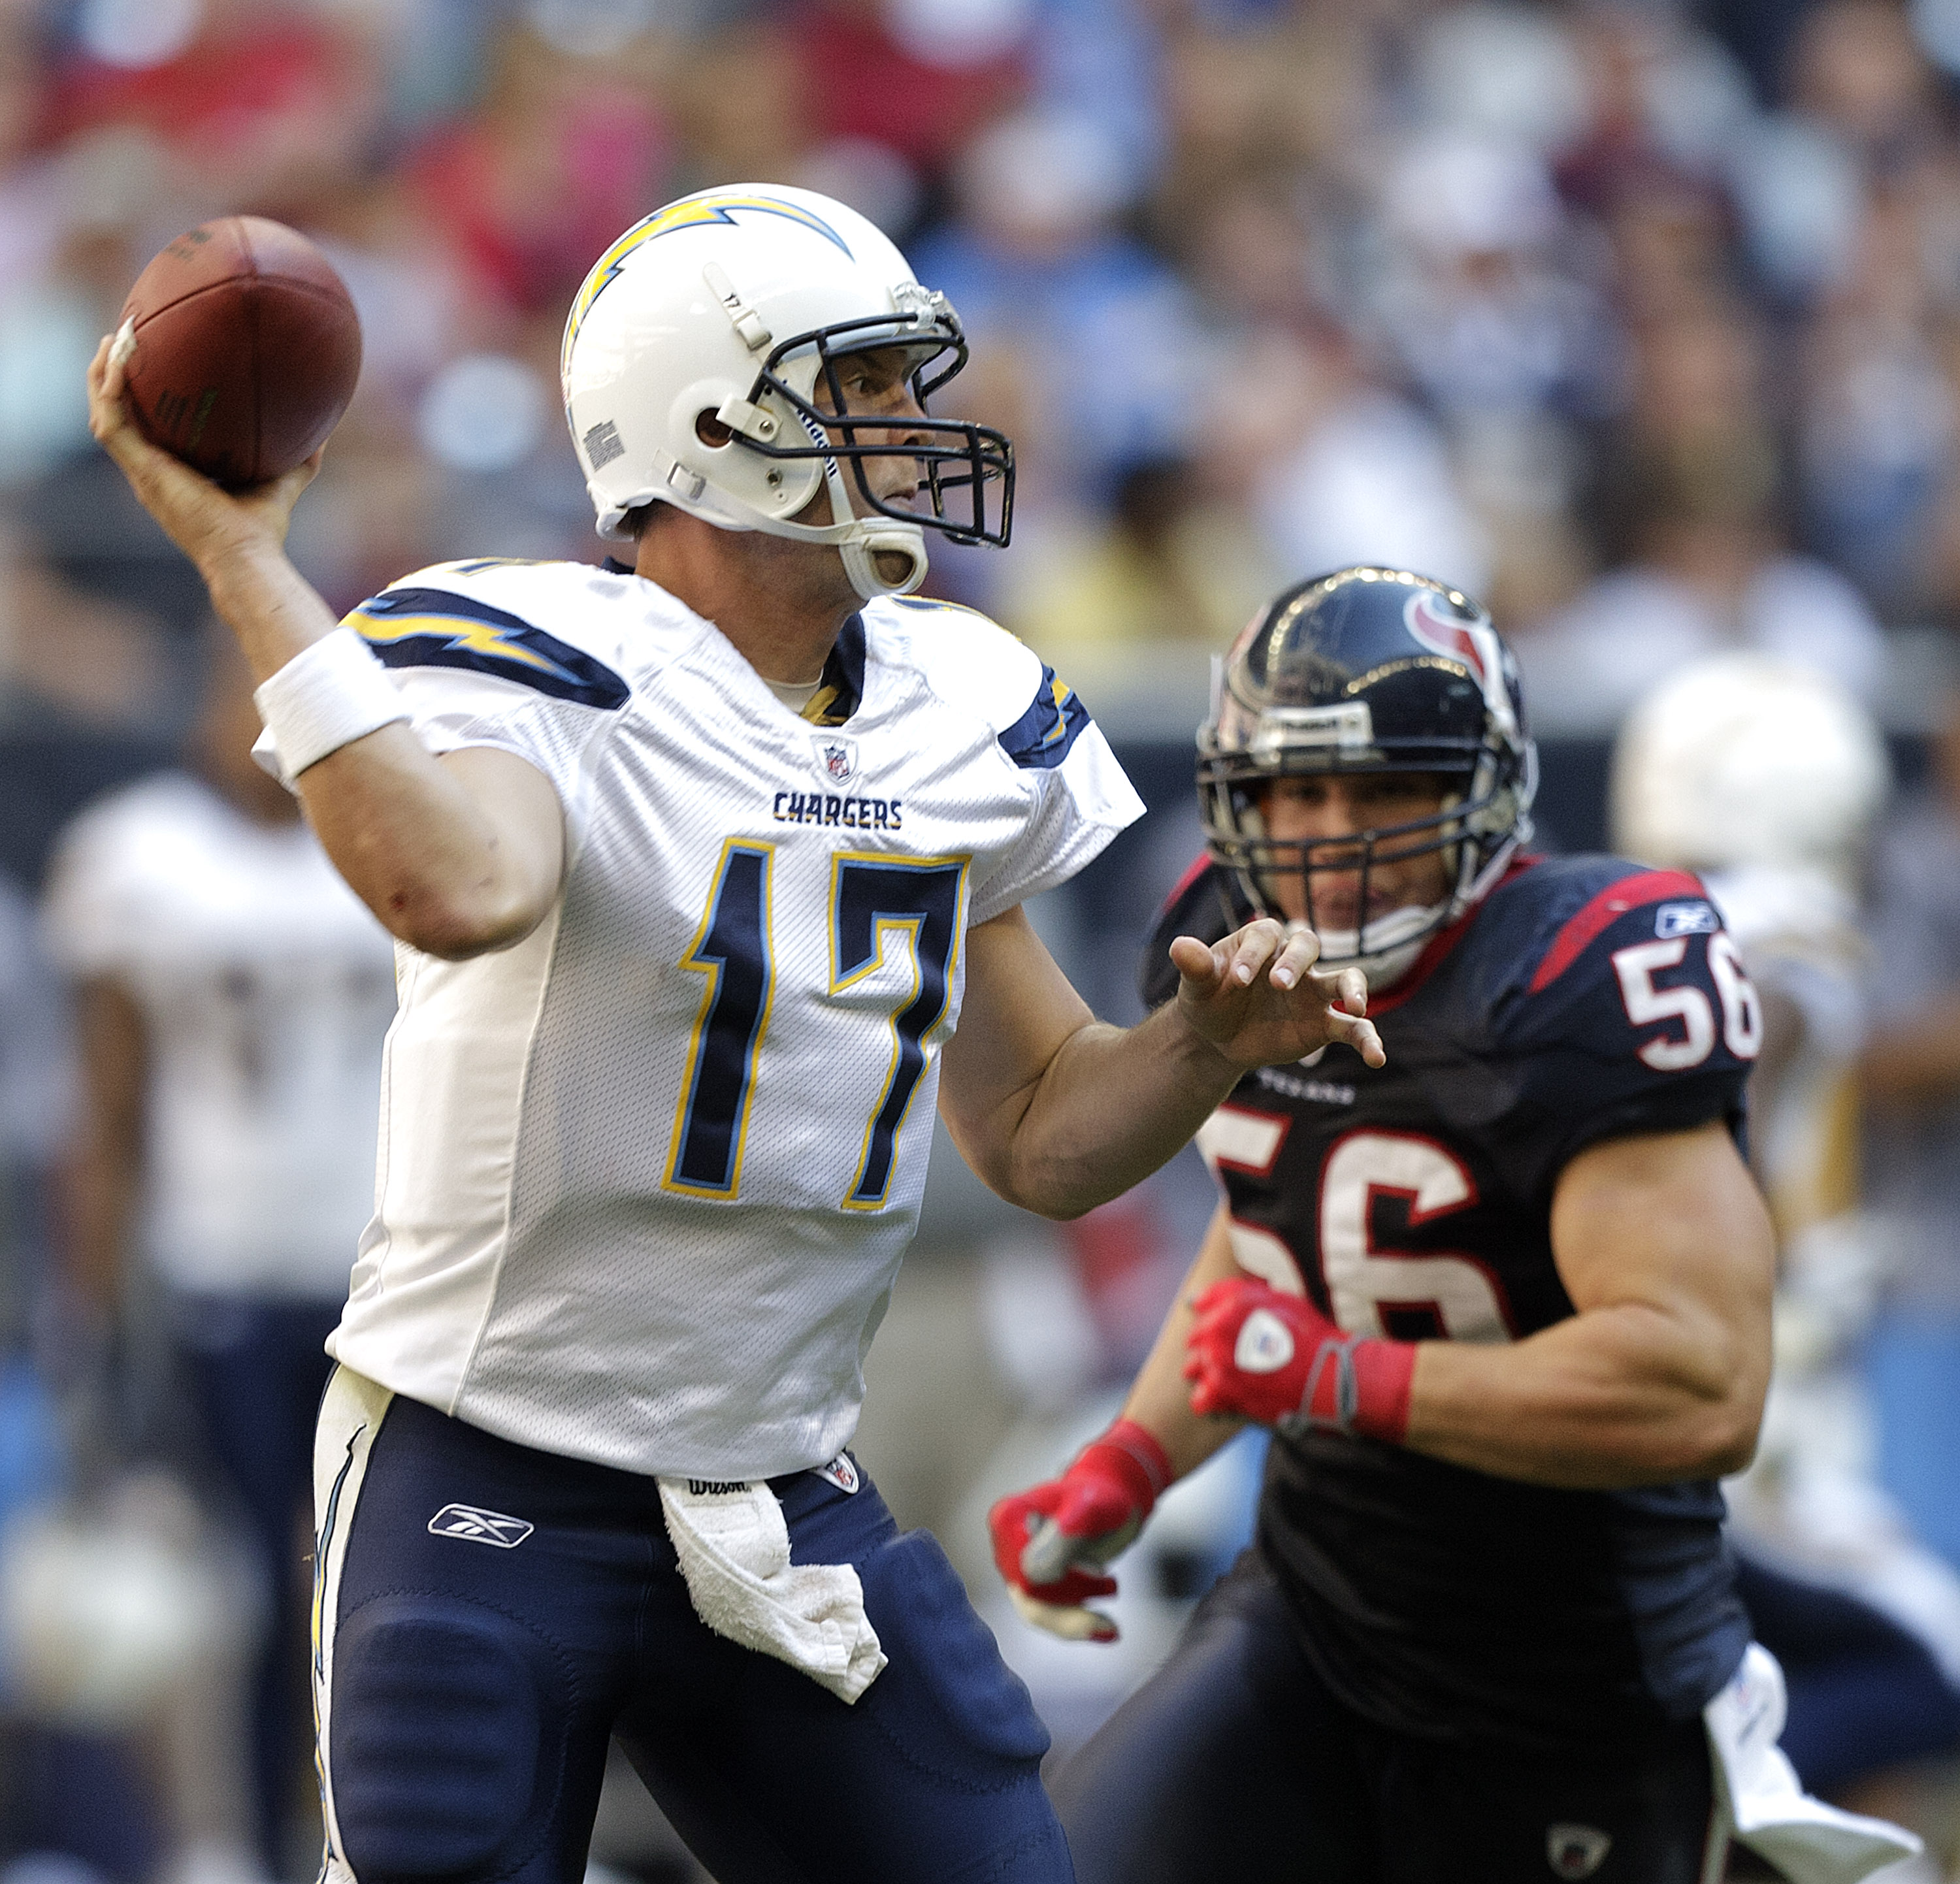 HOUSTON - NOVEMBER 07:  Quarterback Philip Rivers #17 of the San Diego Chargers throws downfield as linebacker Brian Cushing #56 of the Houston Texans applies pressure at Reliant Stadium on November 7, 2010 in Houston, Texas.  (Photo by Bob Levey/Getty Im